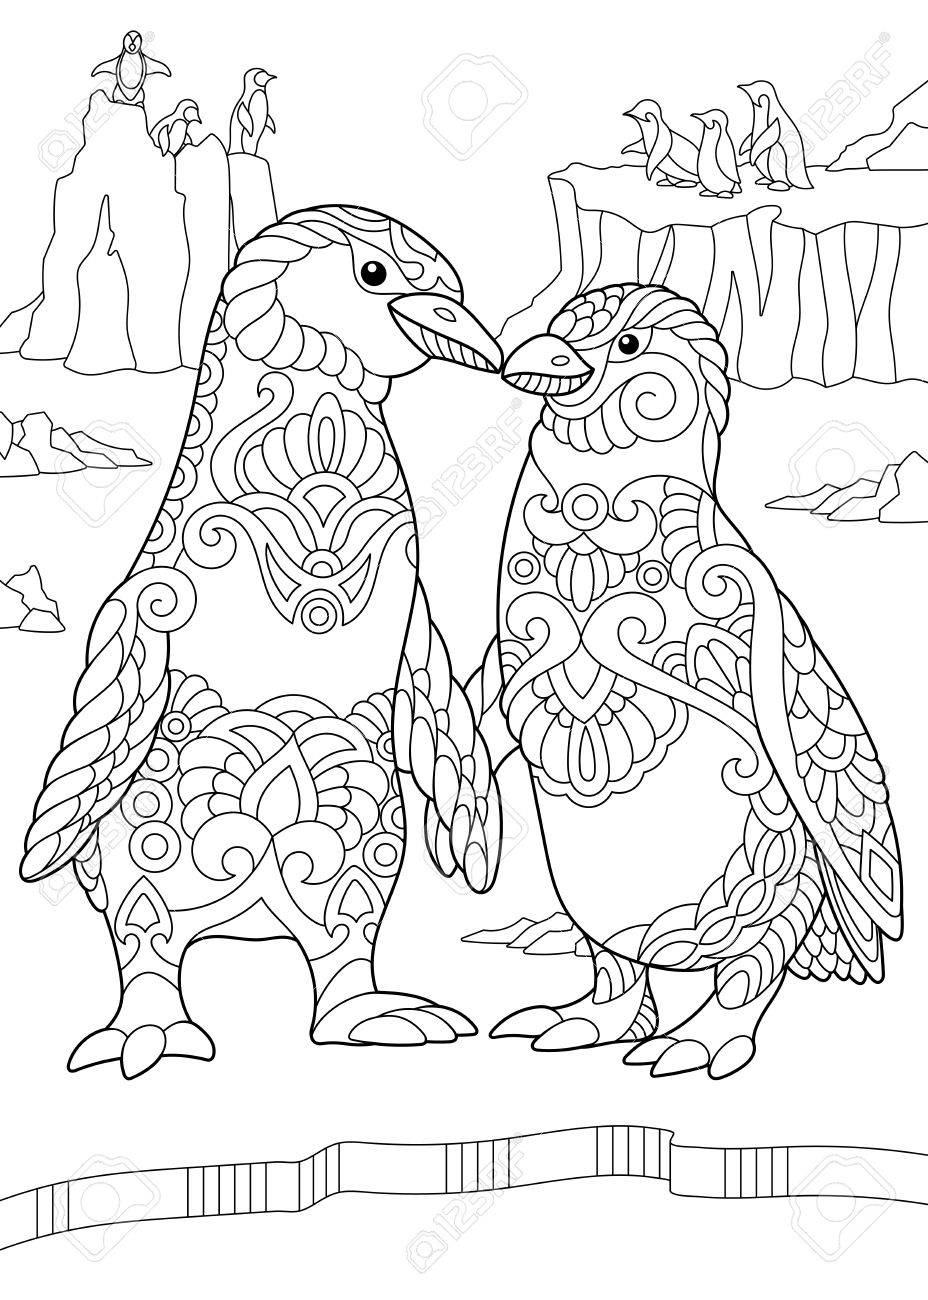 Coloring Page Of Emperor Penguins Couple Kissing Each Other ...